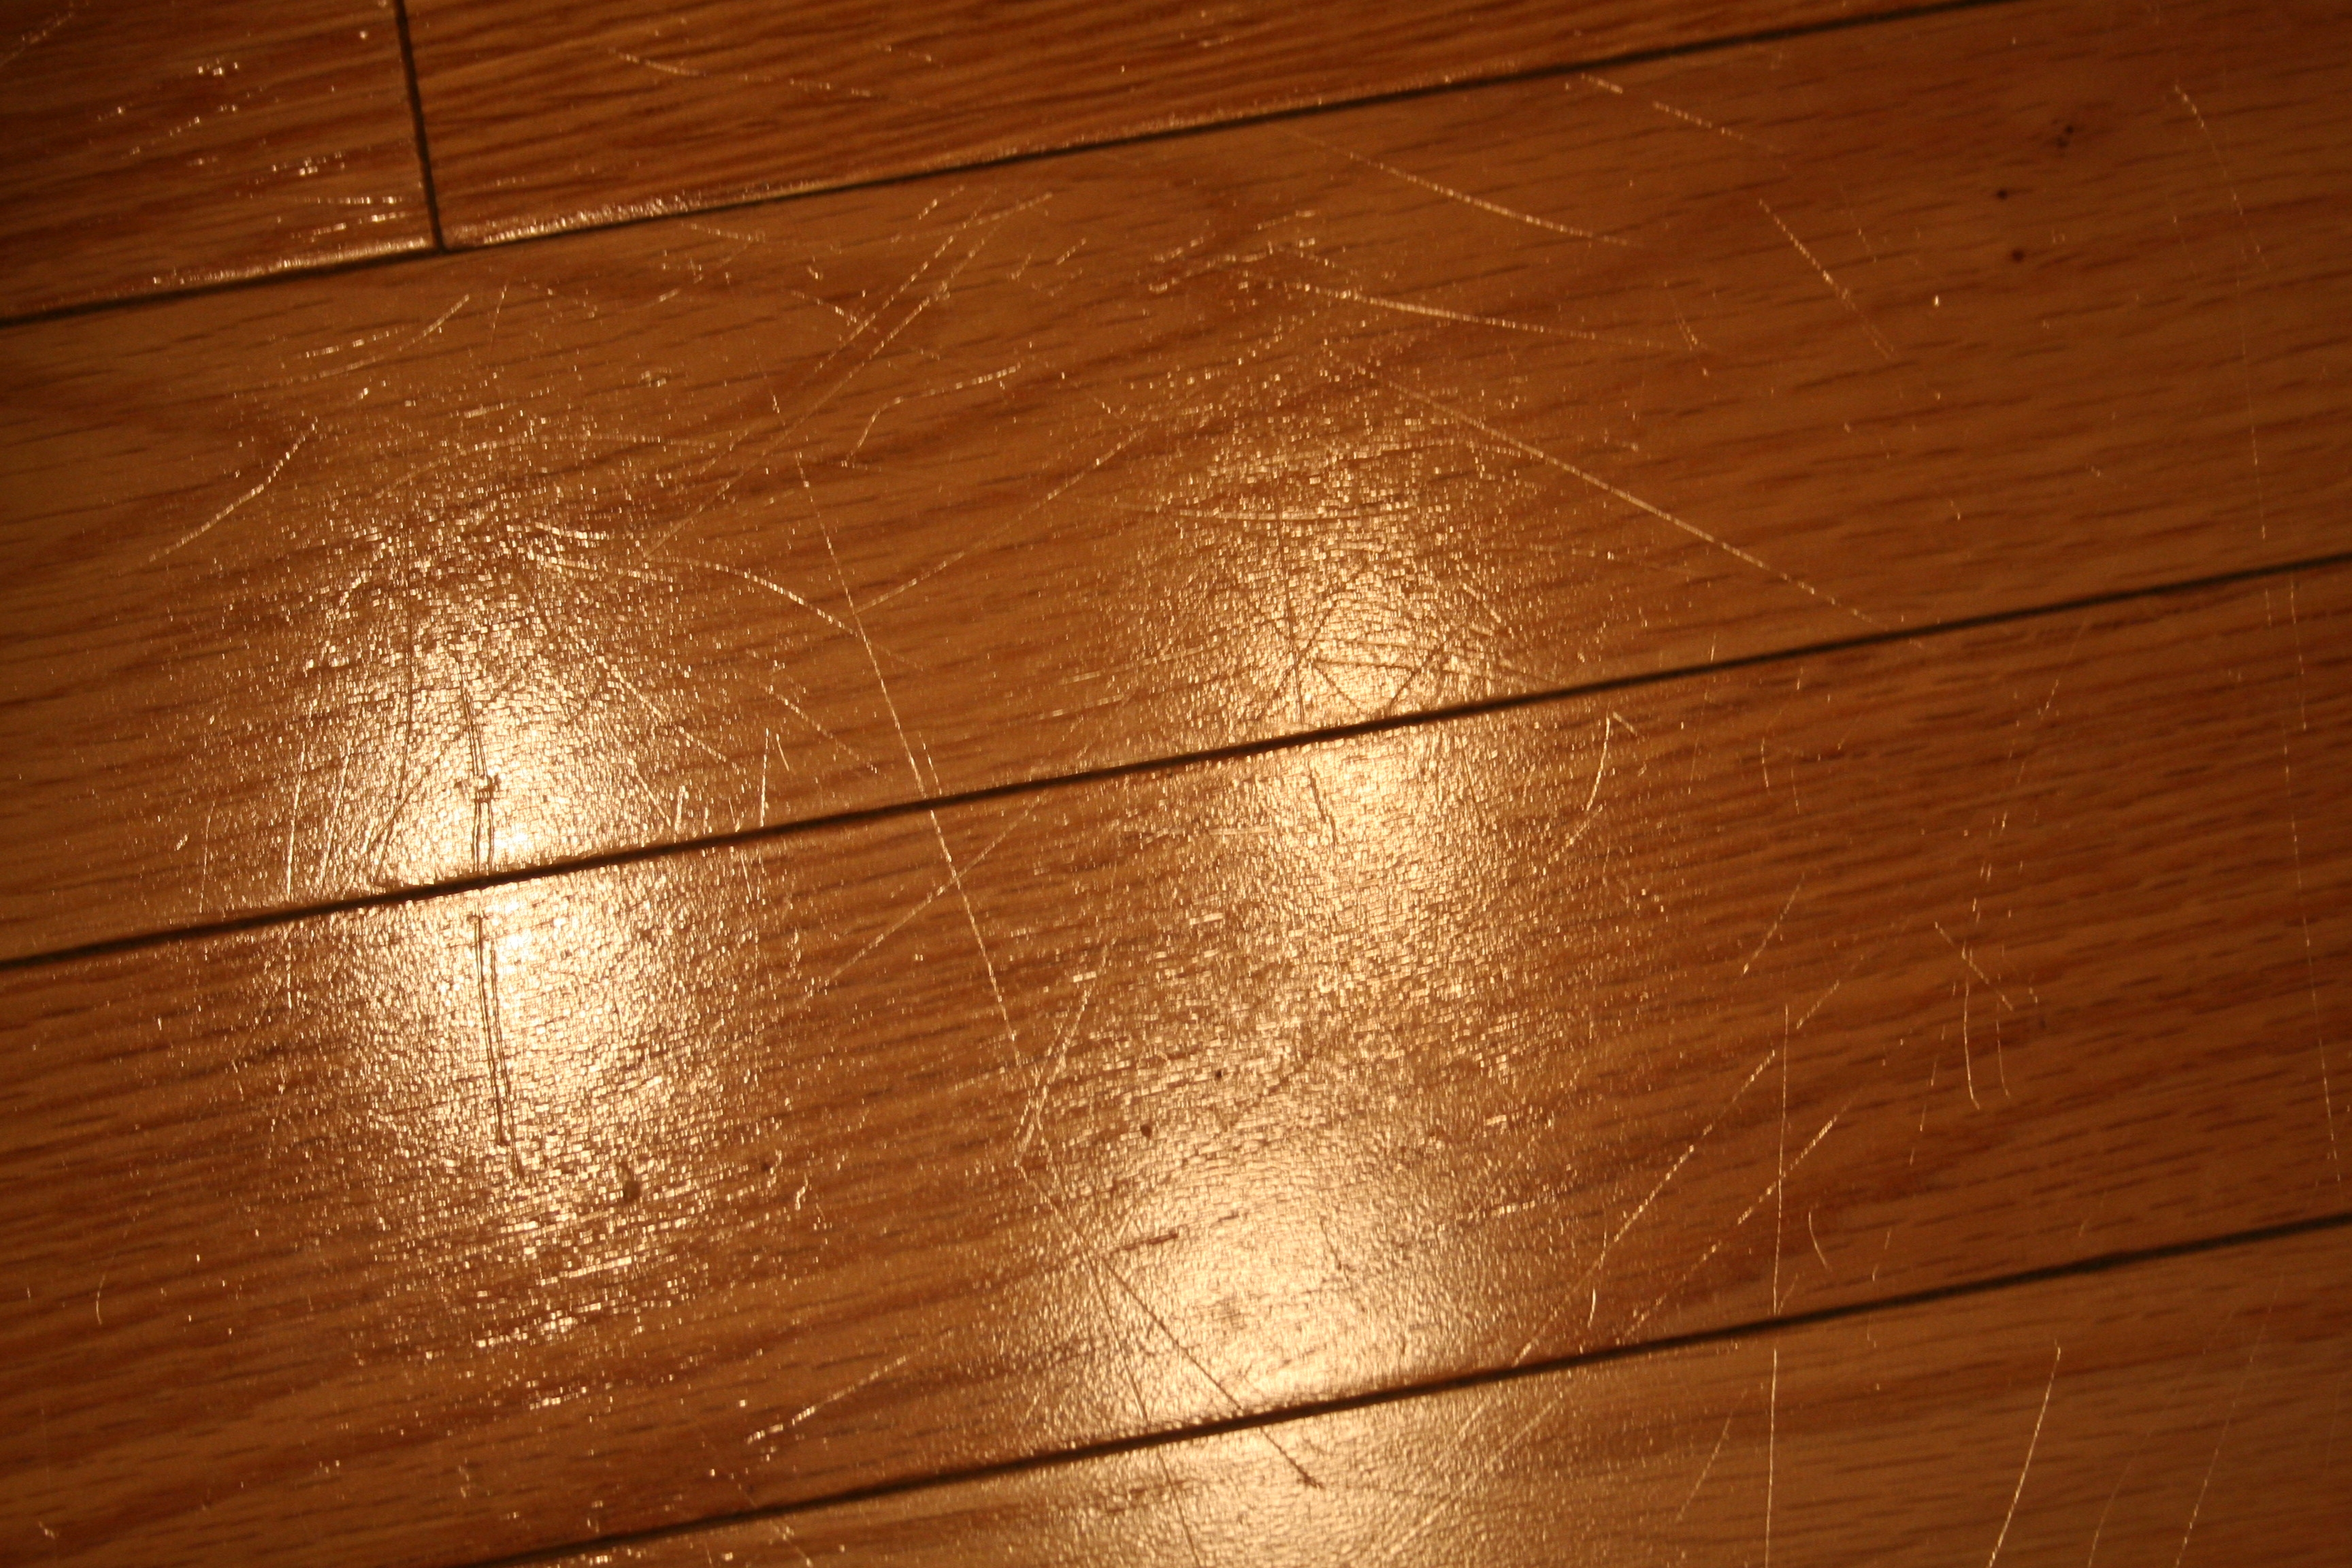 Light Scratches On Wood Floorscuff marks on wood floors greencheese